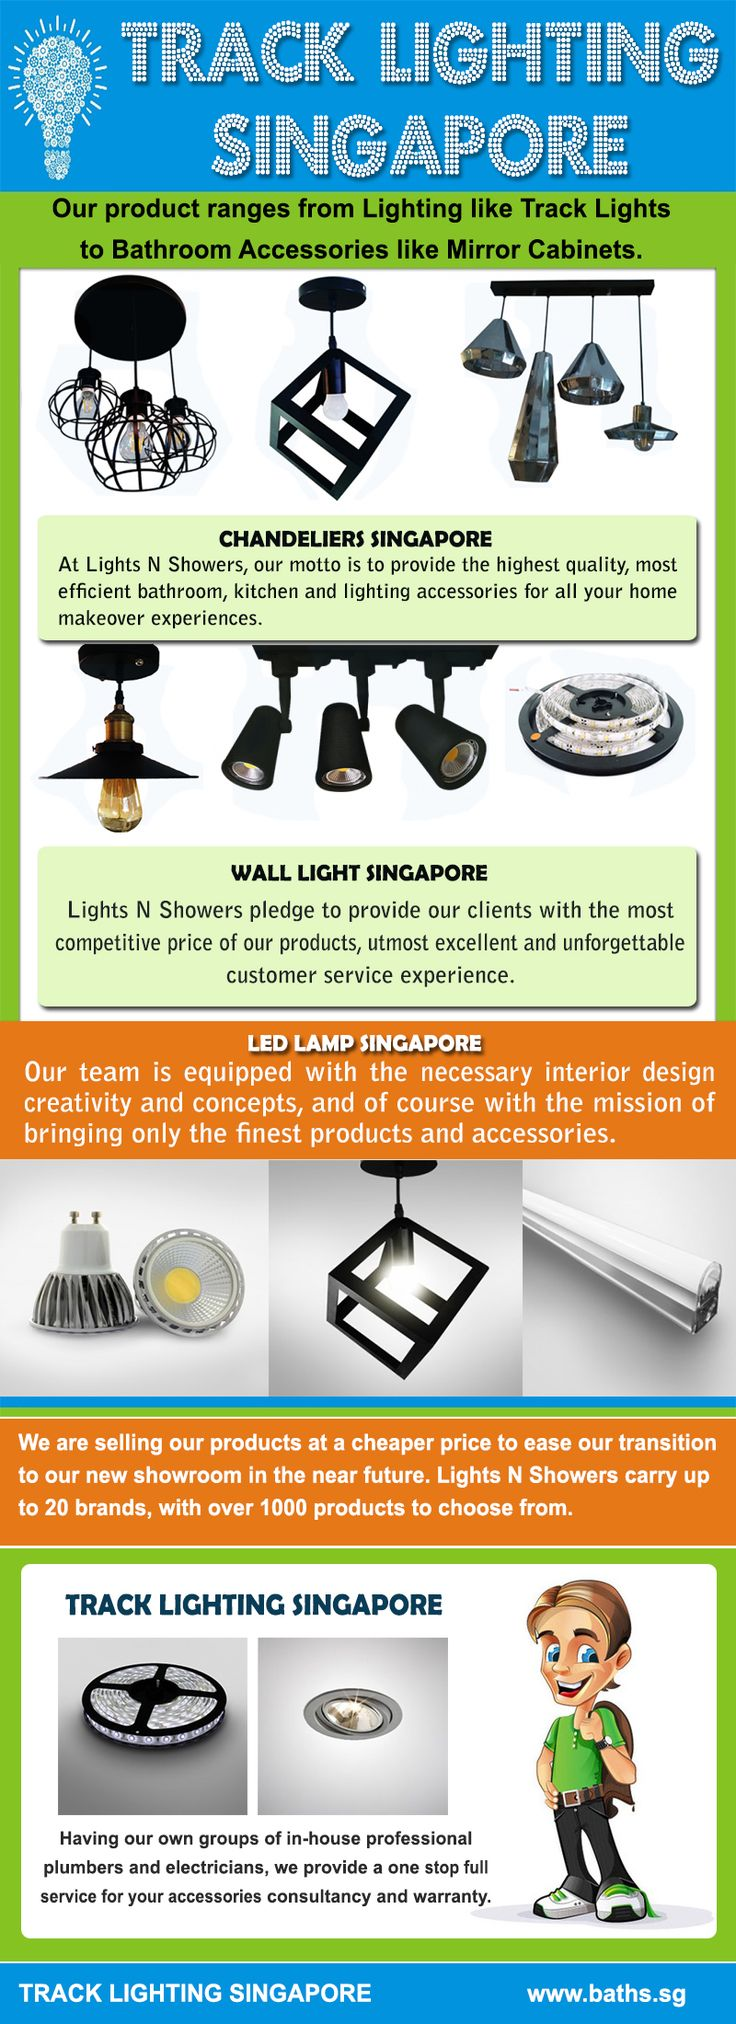 Bathroom lights singapore - Visit This Site Http Baths Sg For More Information On Chandeliers Singapore Though Deciding On A Chandeliers Singapore For Your Home Is Largely